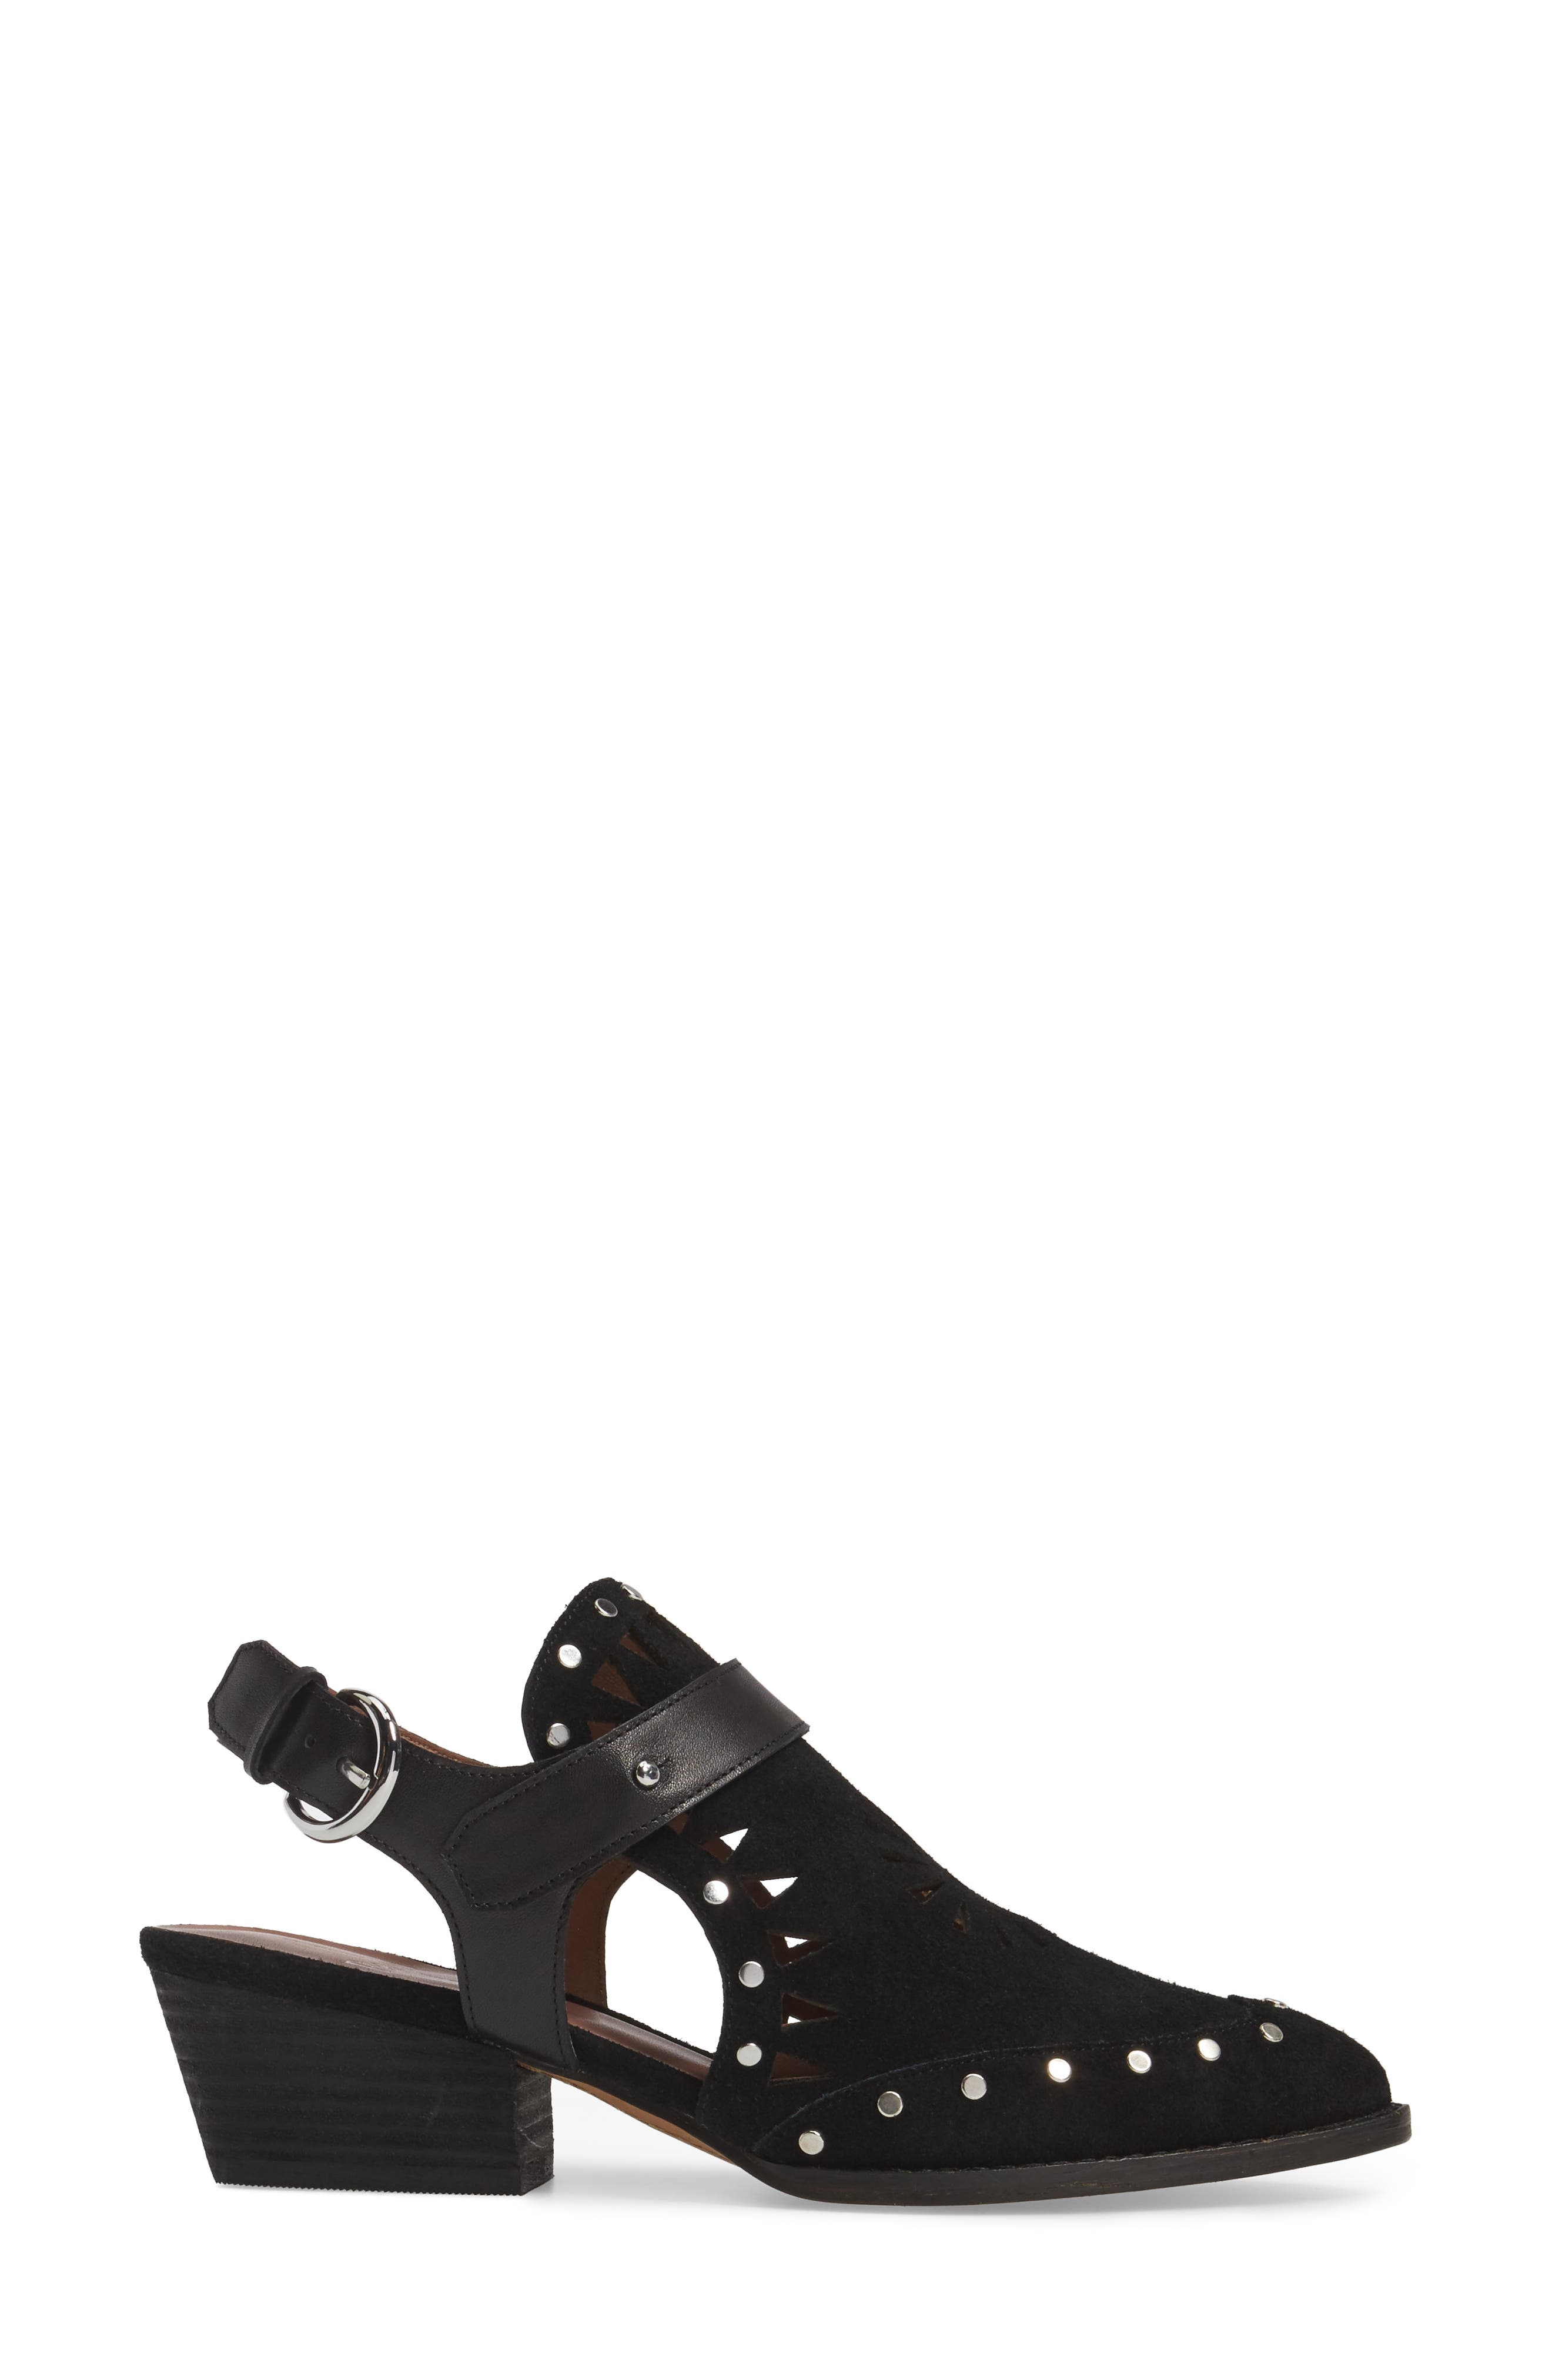 Whitney Bootie,                             Alternate thumbnail 3, color,                             001